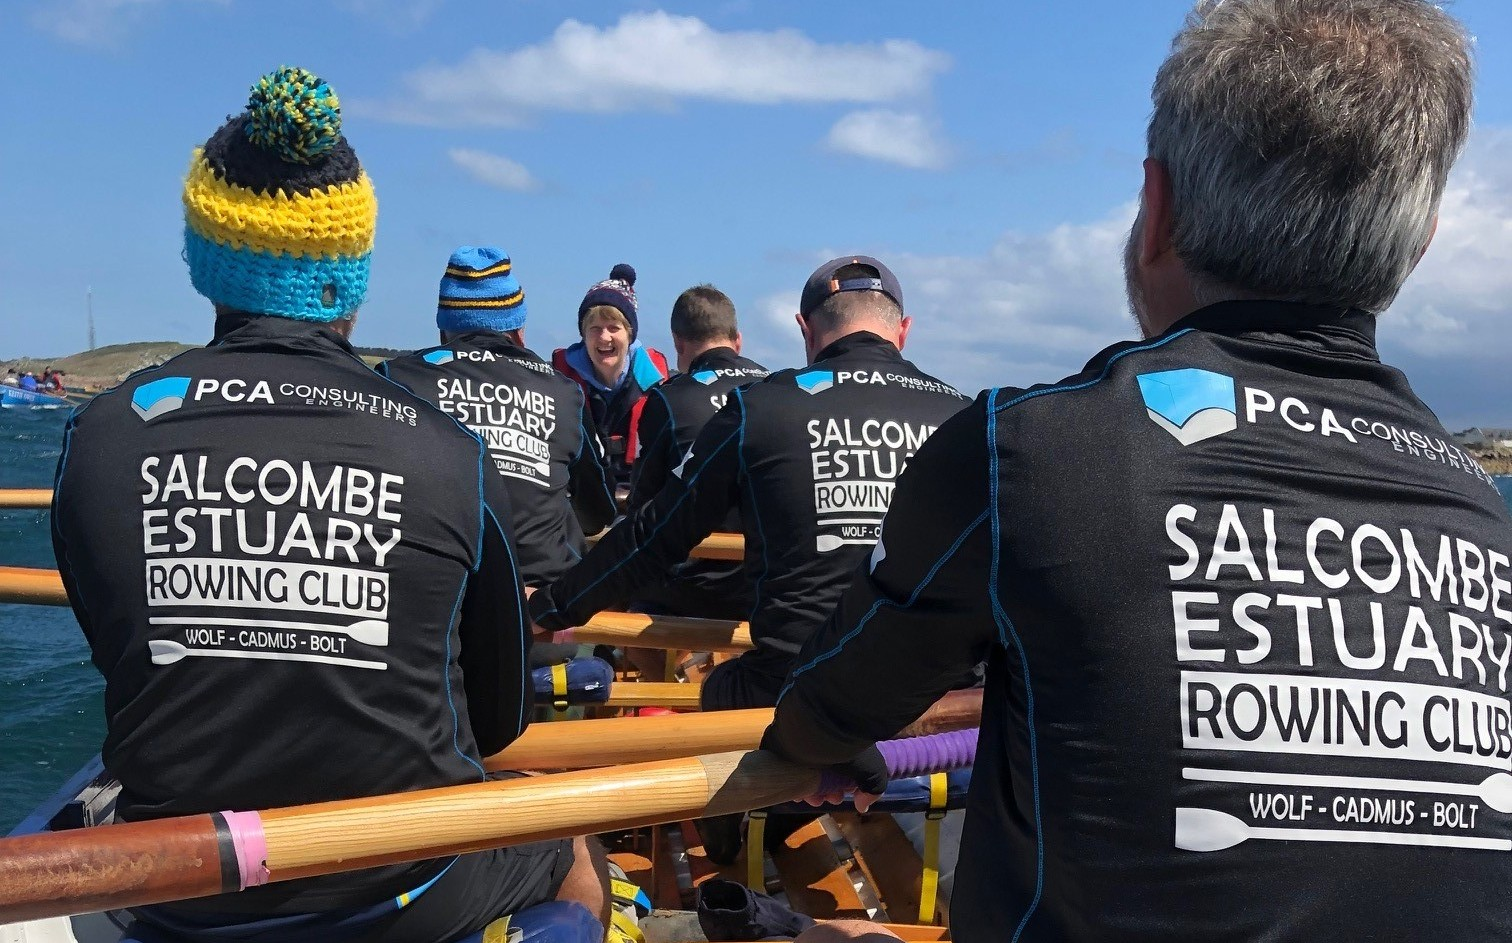 PCA sponsored Salcombe's B crew at the World Gig Championships 2019